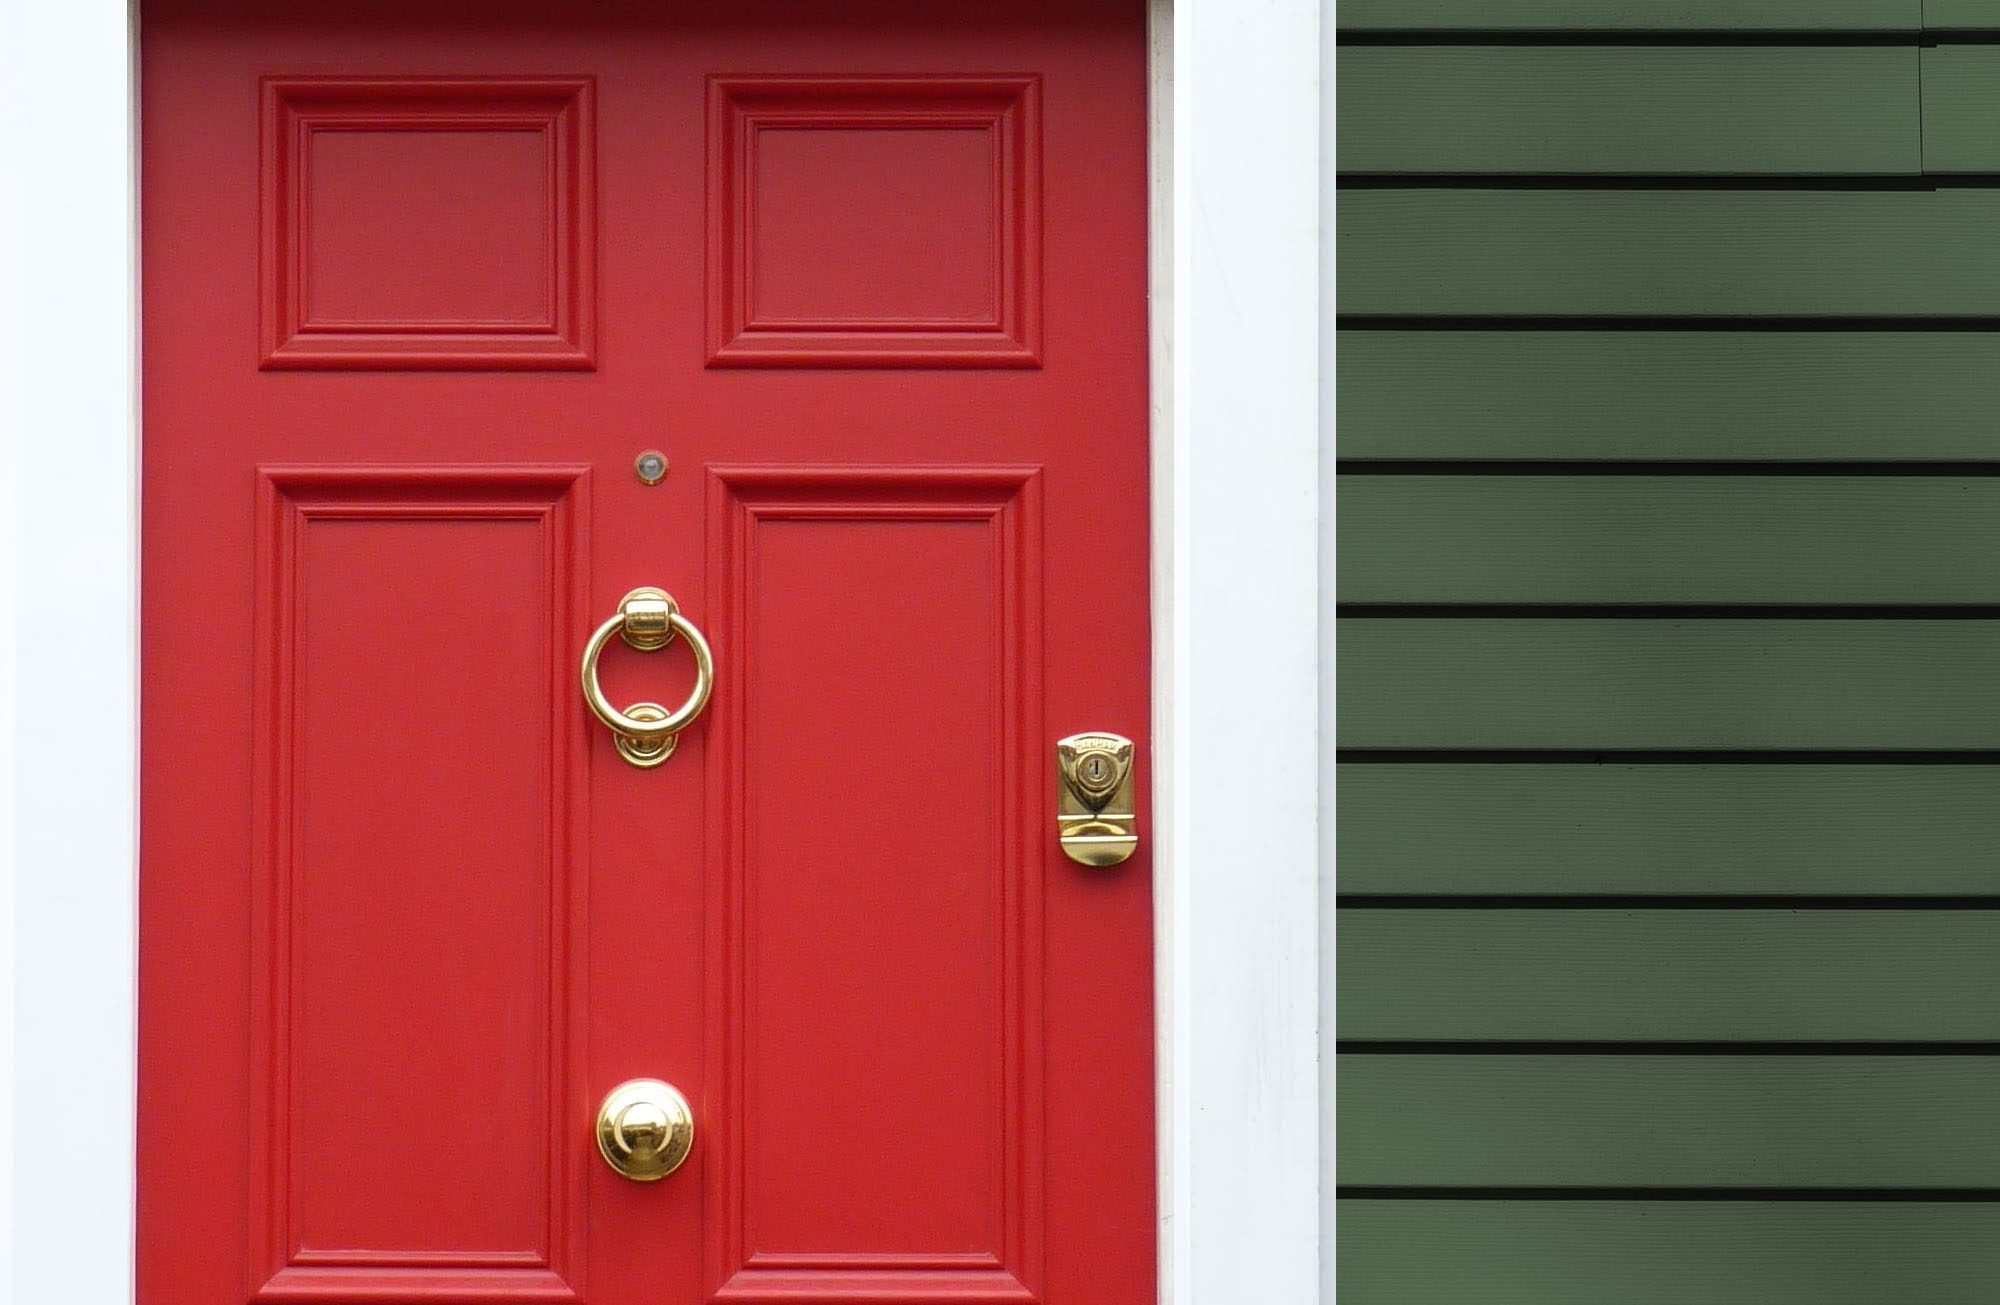 Forest green cedar shake siding with white trim and a bright red front door with gold hardware.